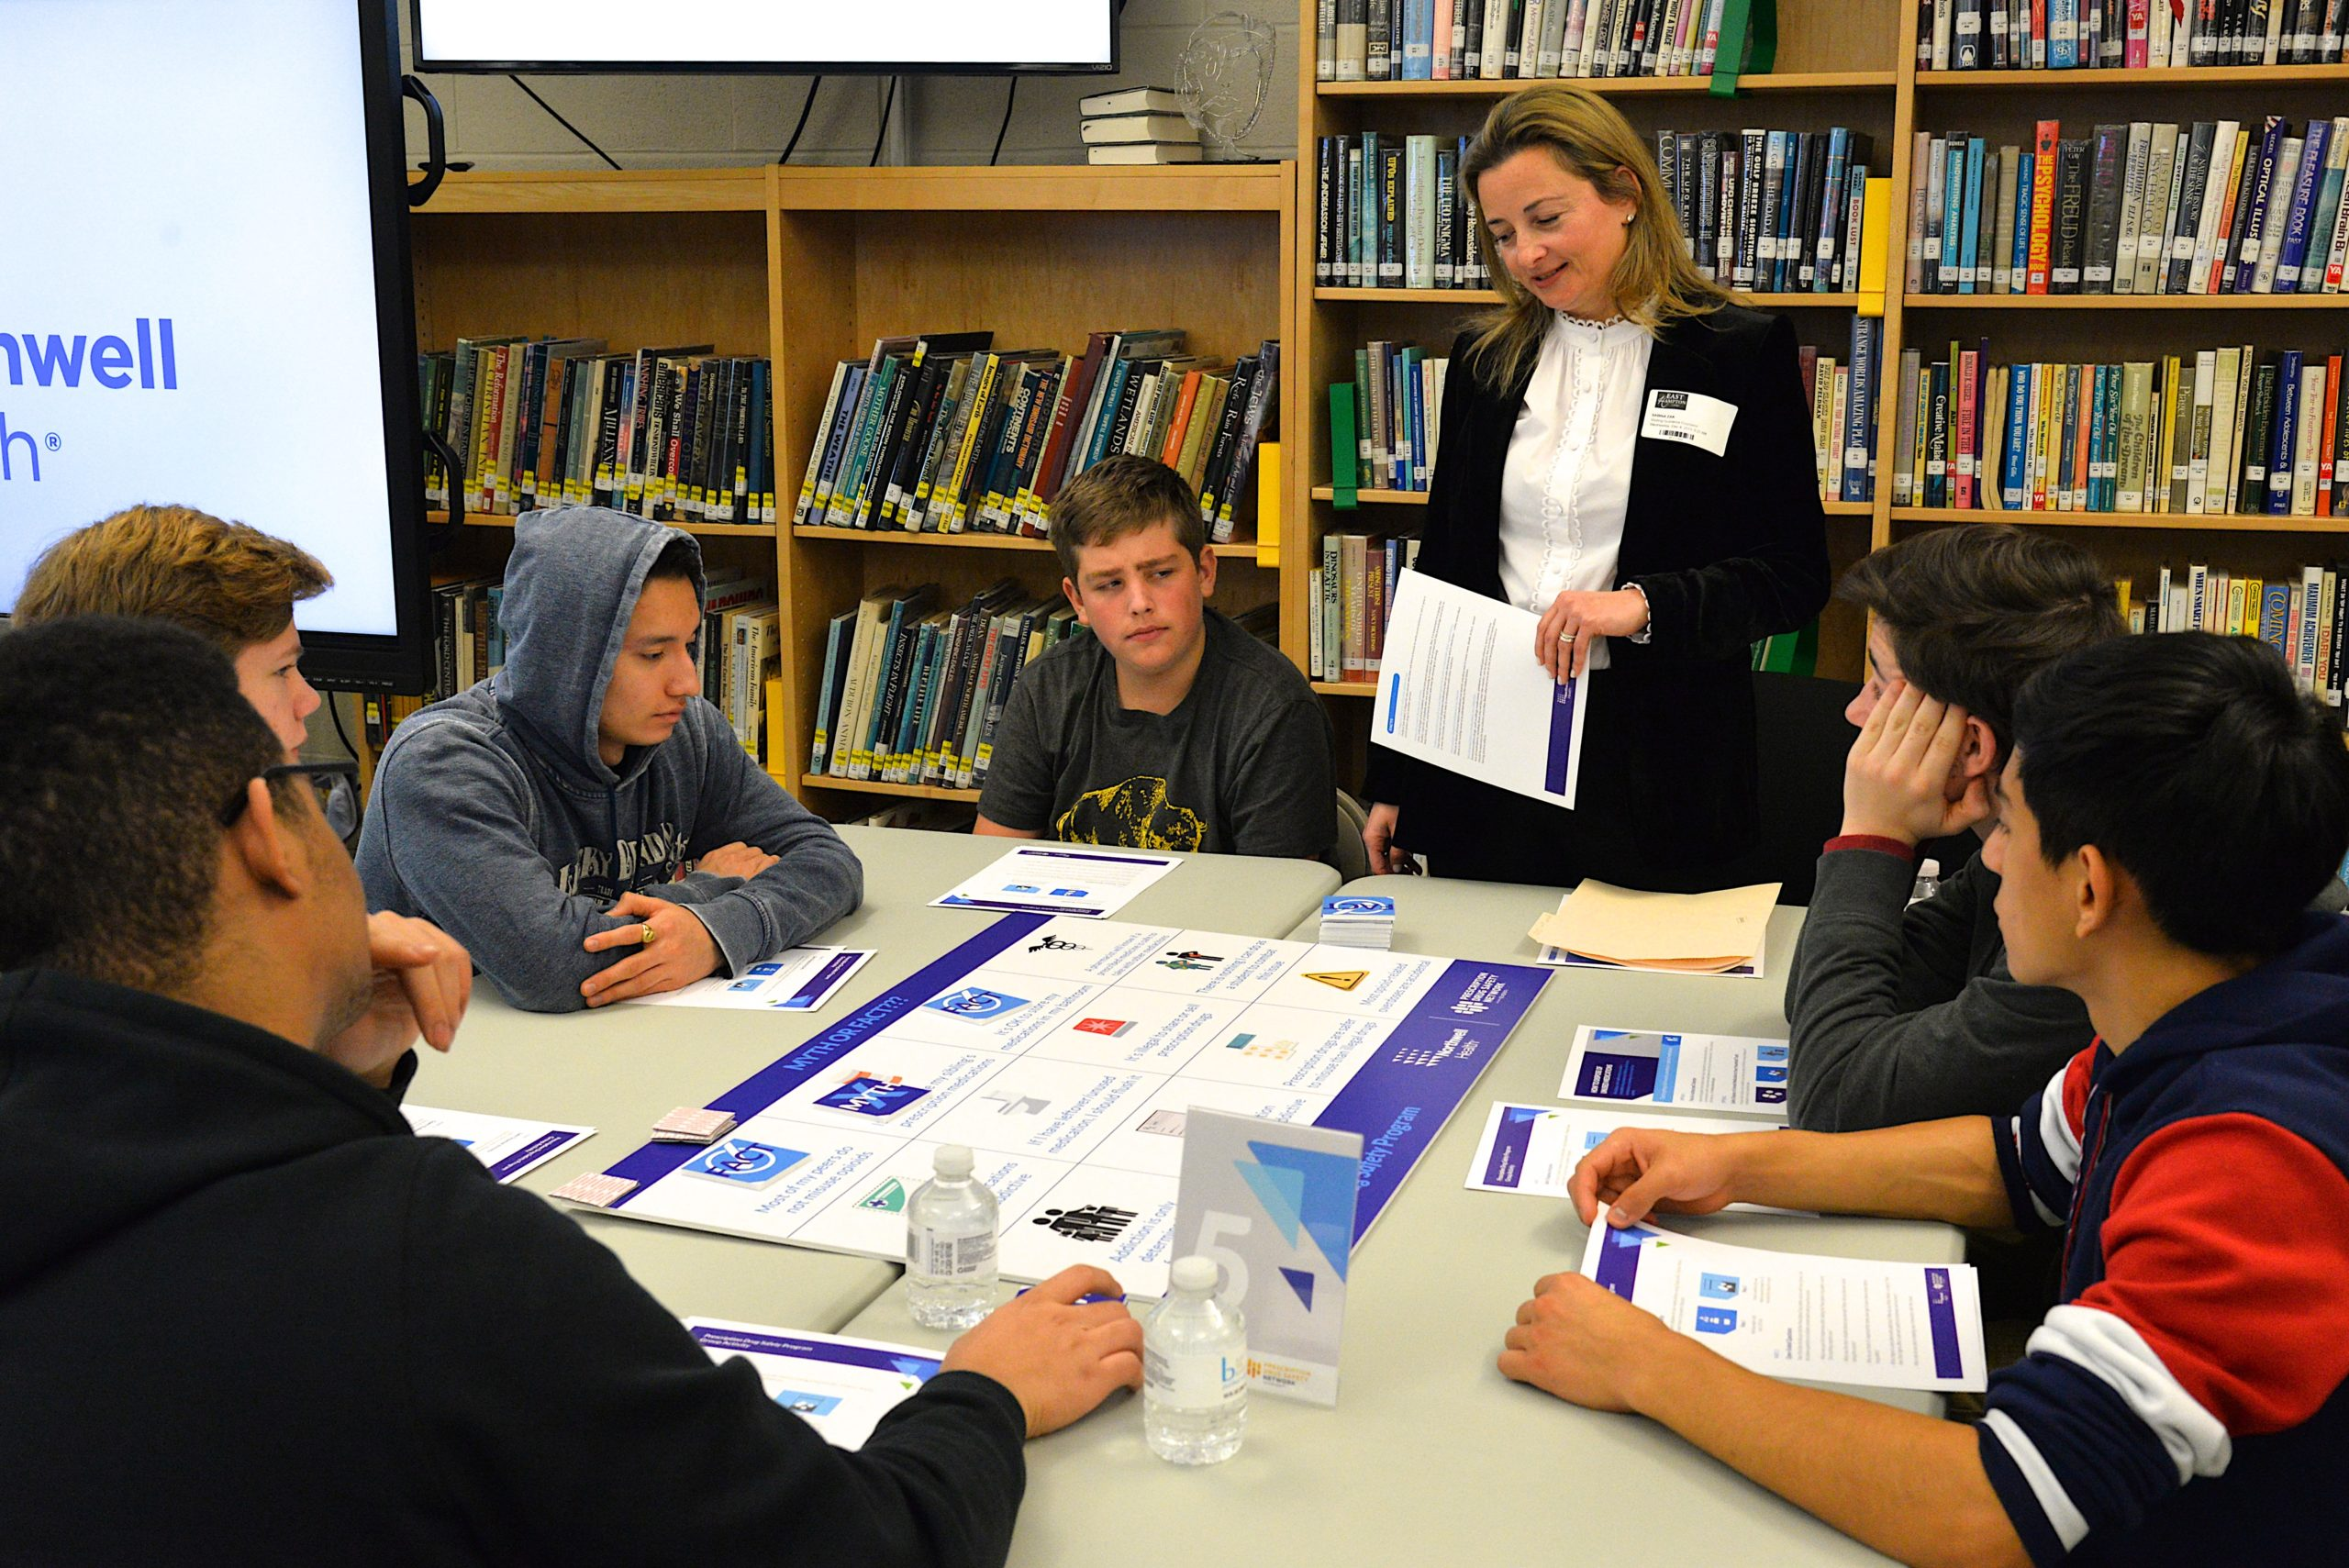 Sabina Zak speaks with students at one table. KYRIL BROMLEY